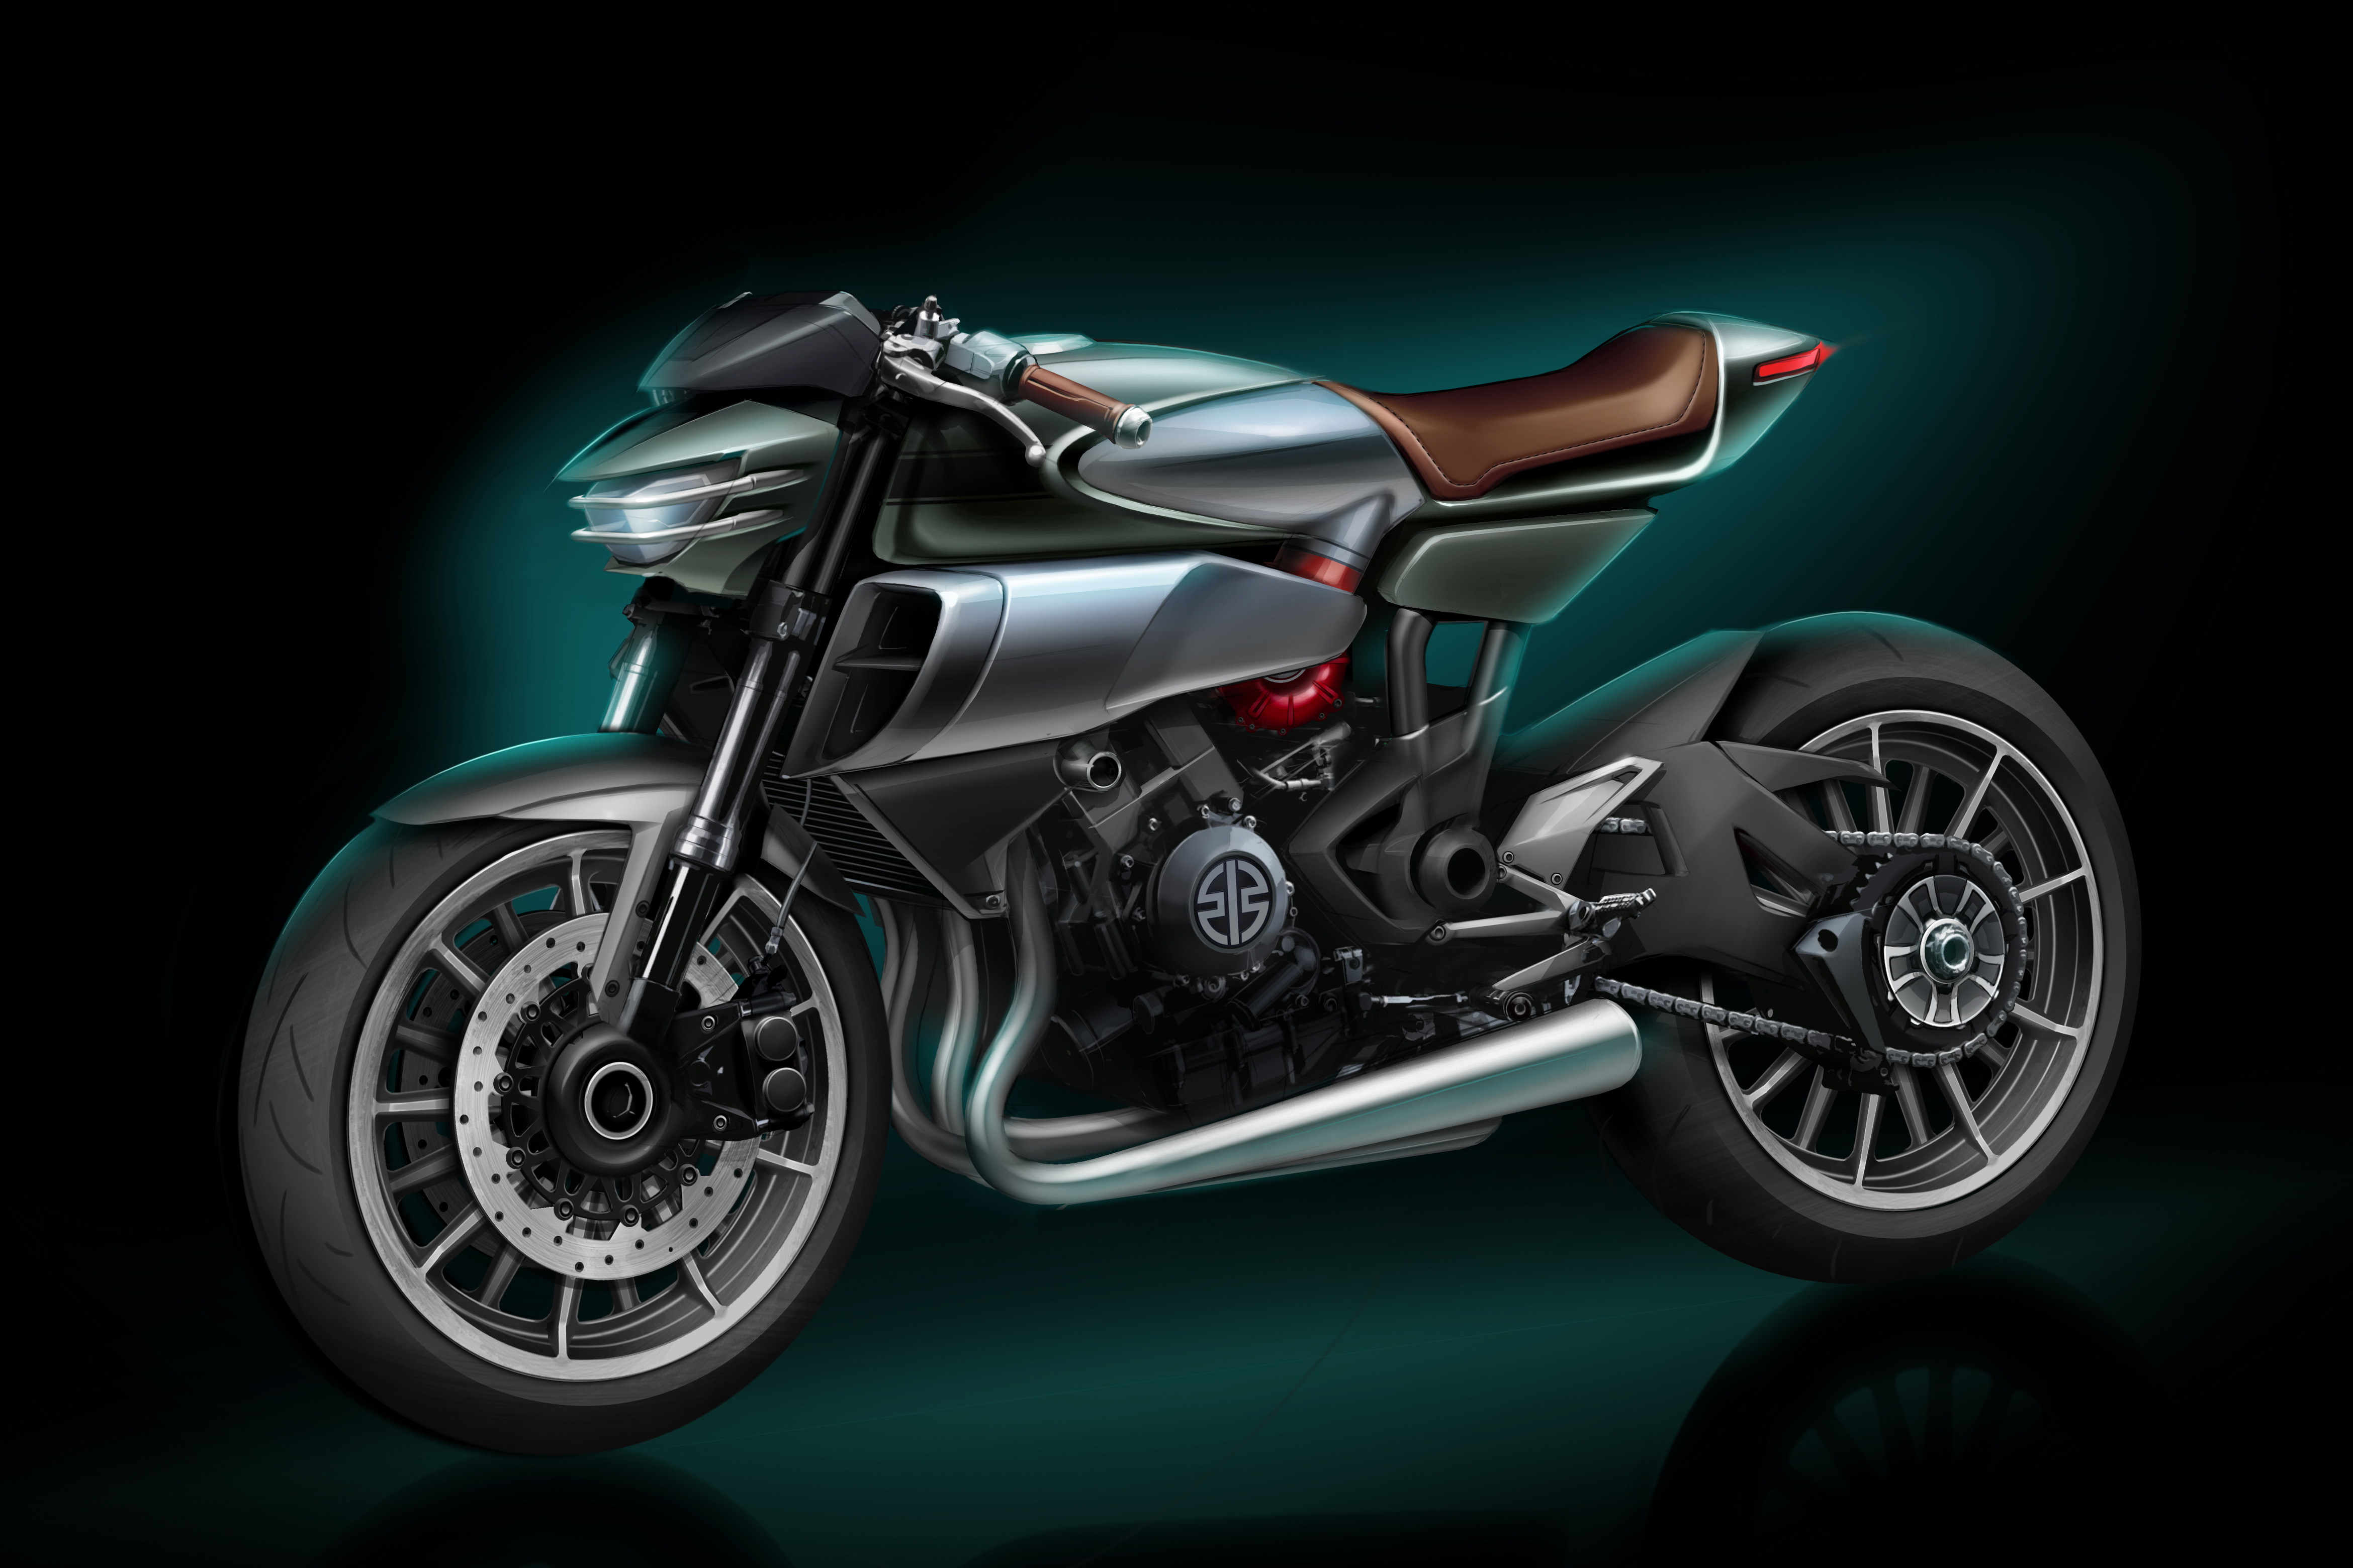 Kawasaki shows another new supercharged concept at Eicma